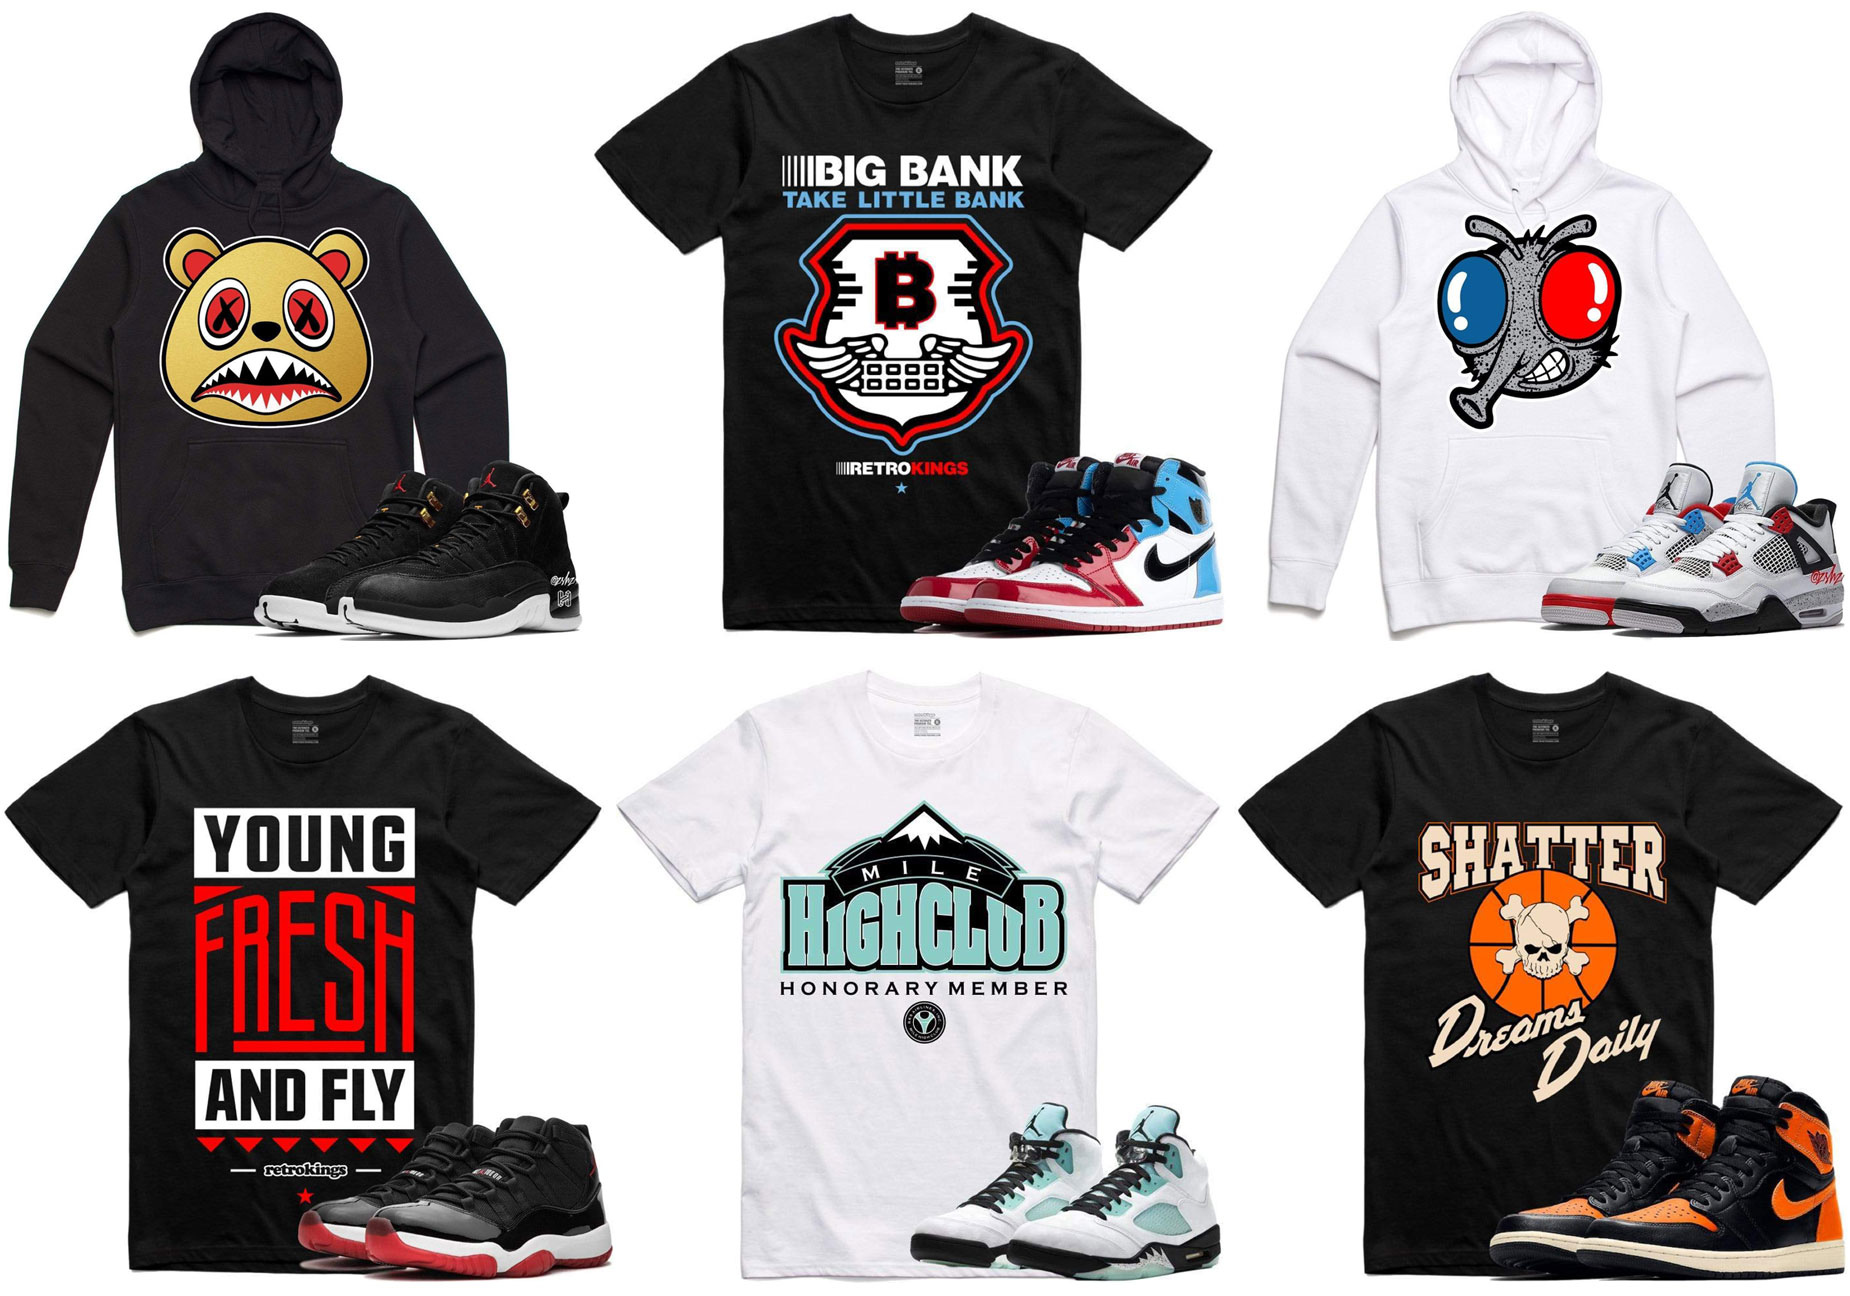 sneaker-tees-cyber-monday-sales-deals-2019